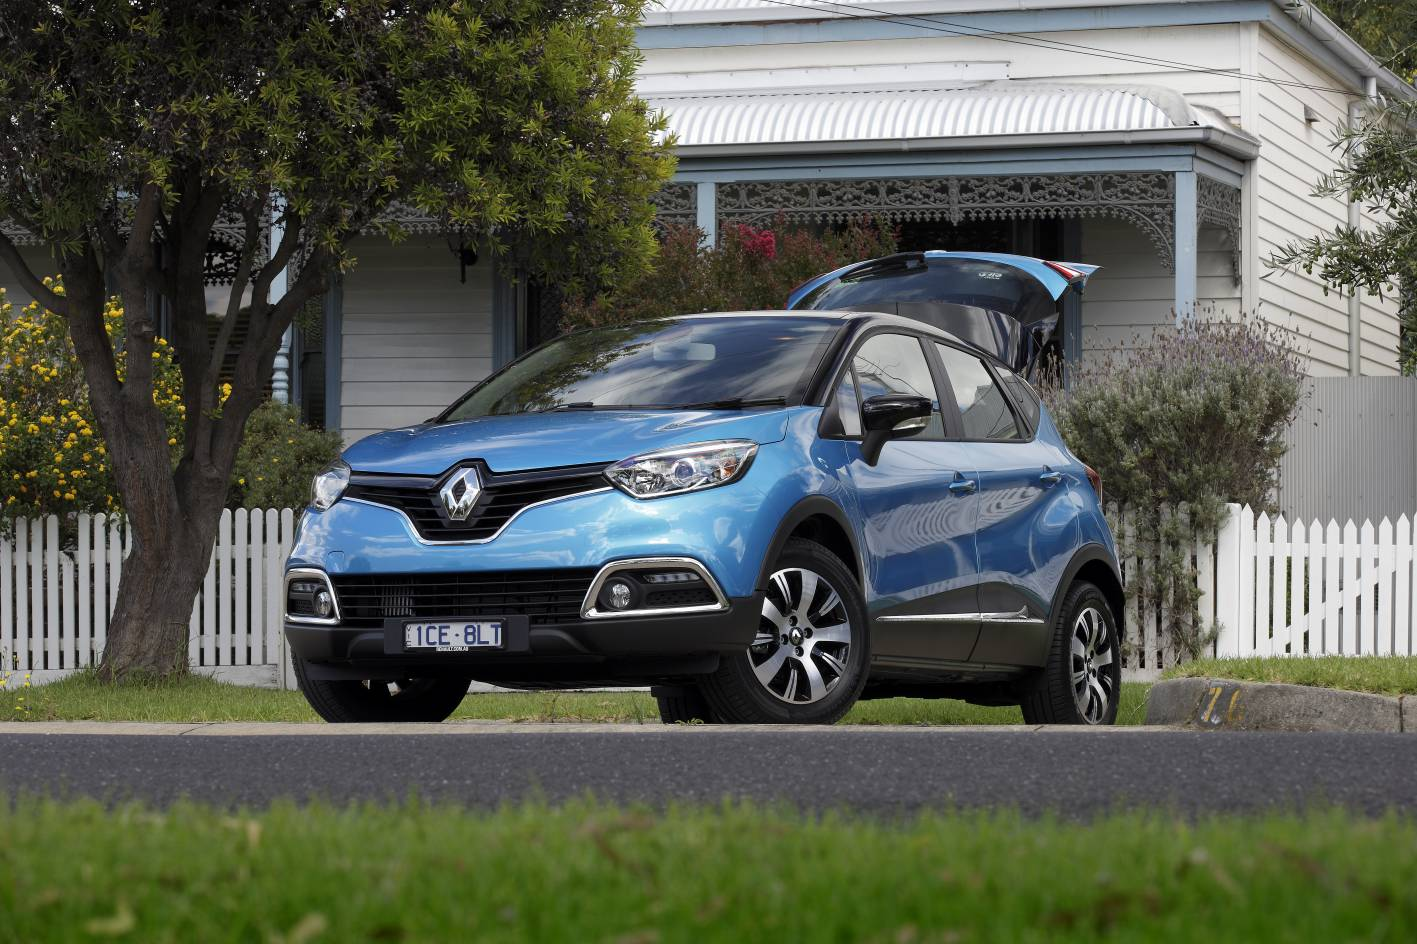 News 0 Finance For Renault Clio And Captur Until October